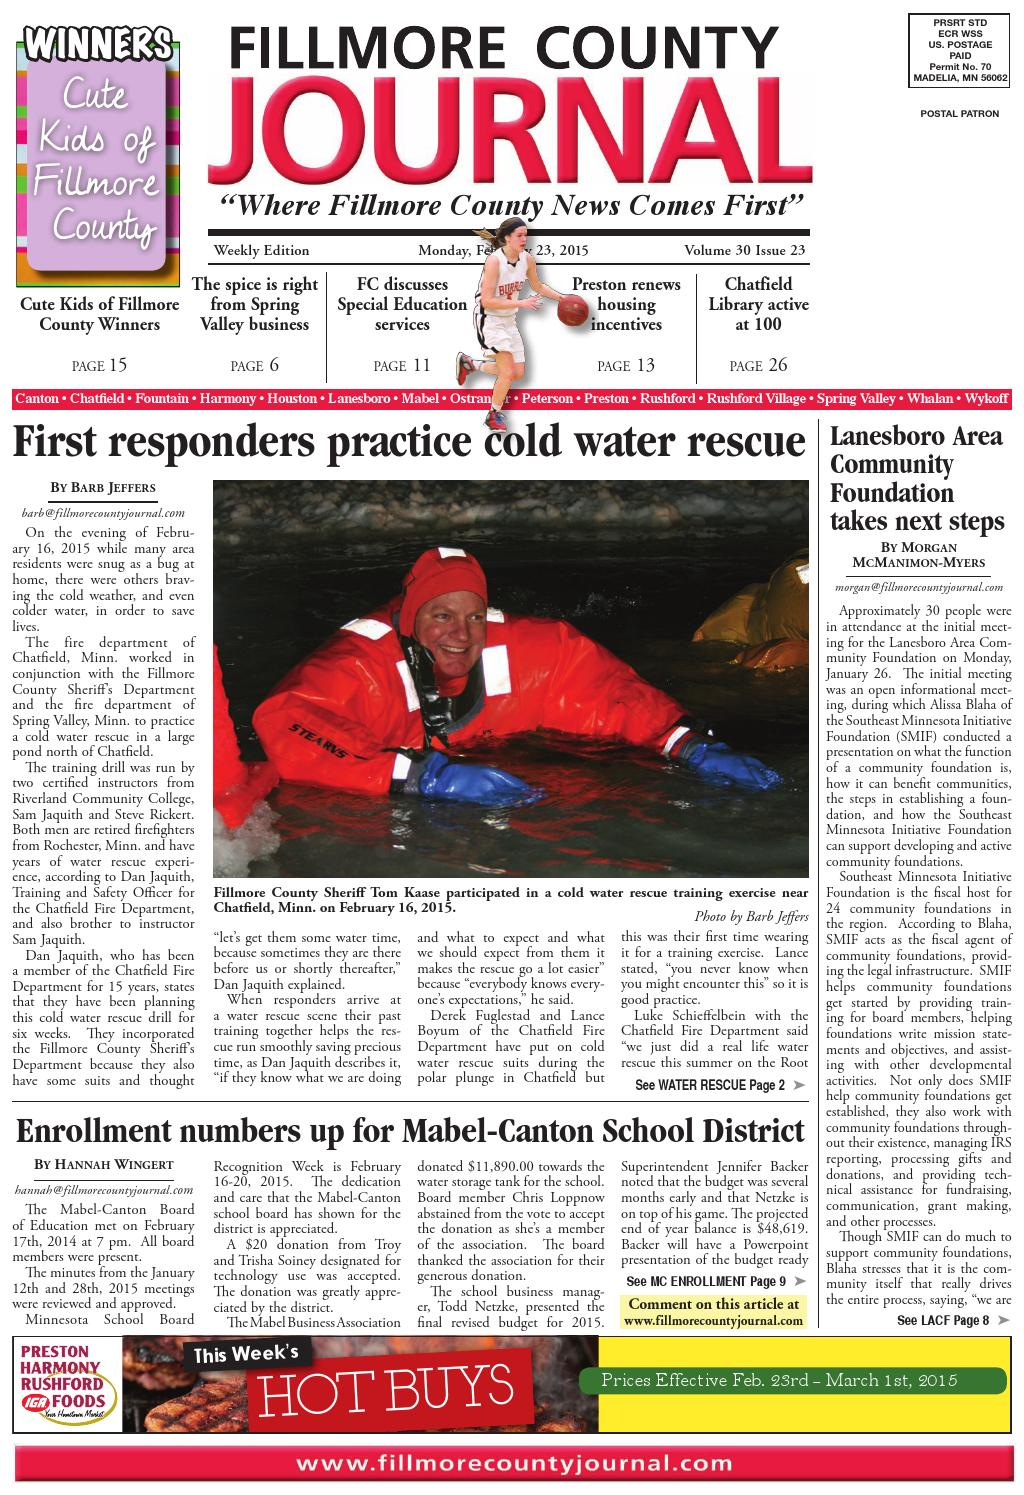 ee0c8d121319 Fillmore County Journal - 2.23.15 by Jason Sethre - issuu